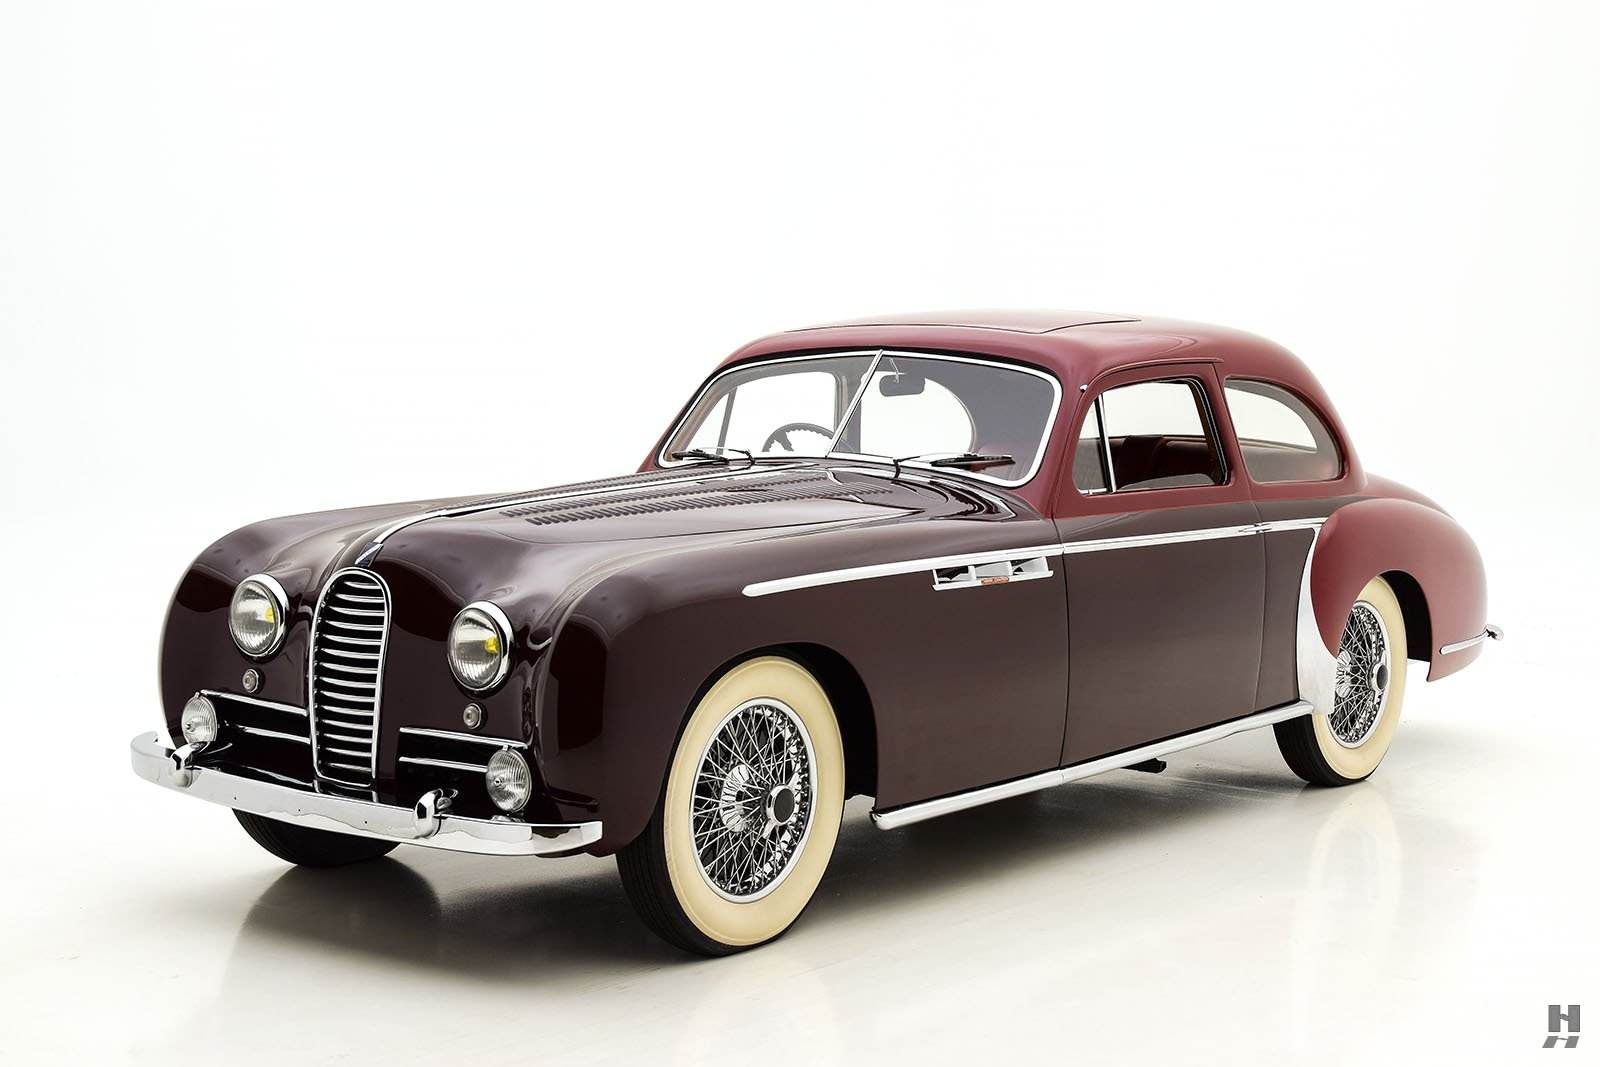 1951 Talbot T26 Record Coupe For Sale | Buy Classic Cars | Hyman LTD